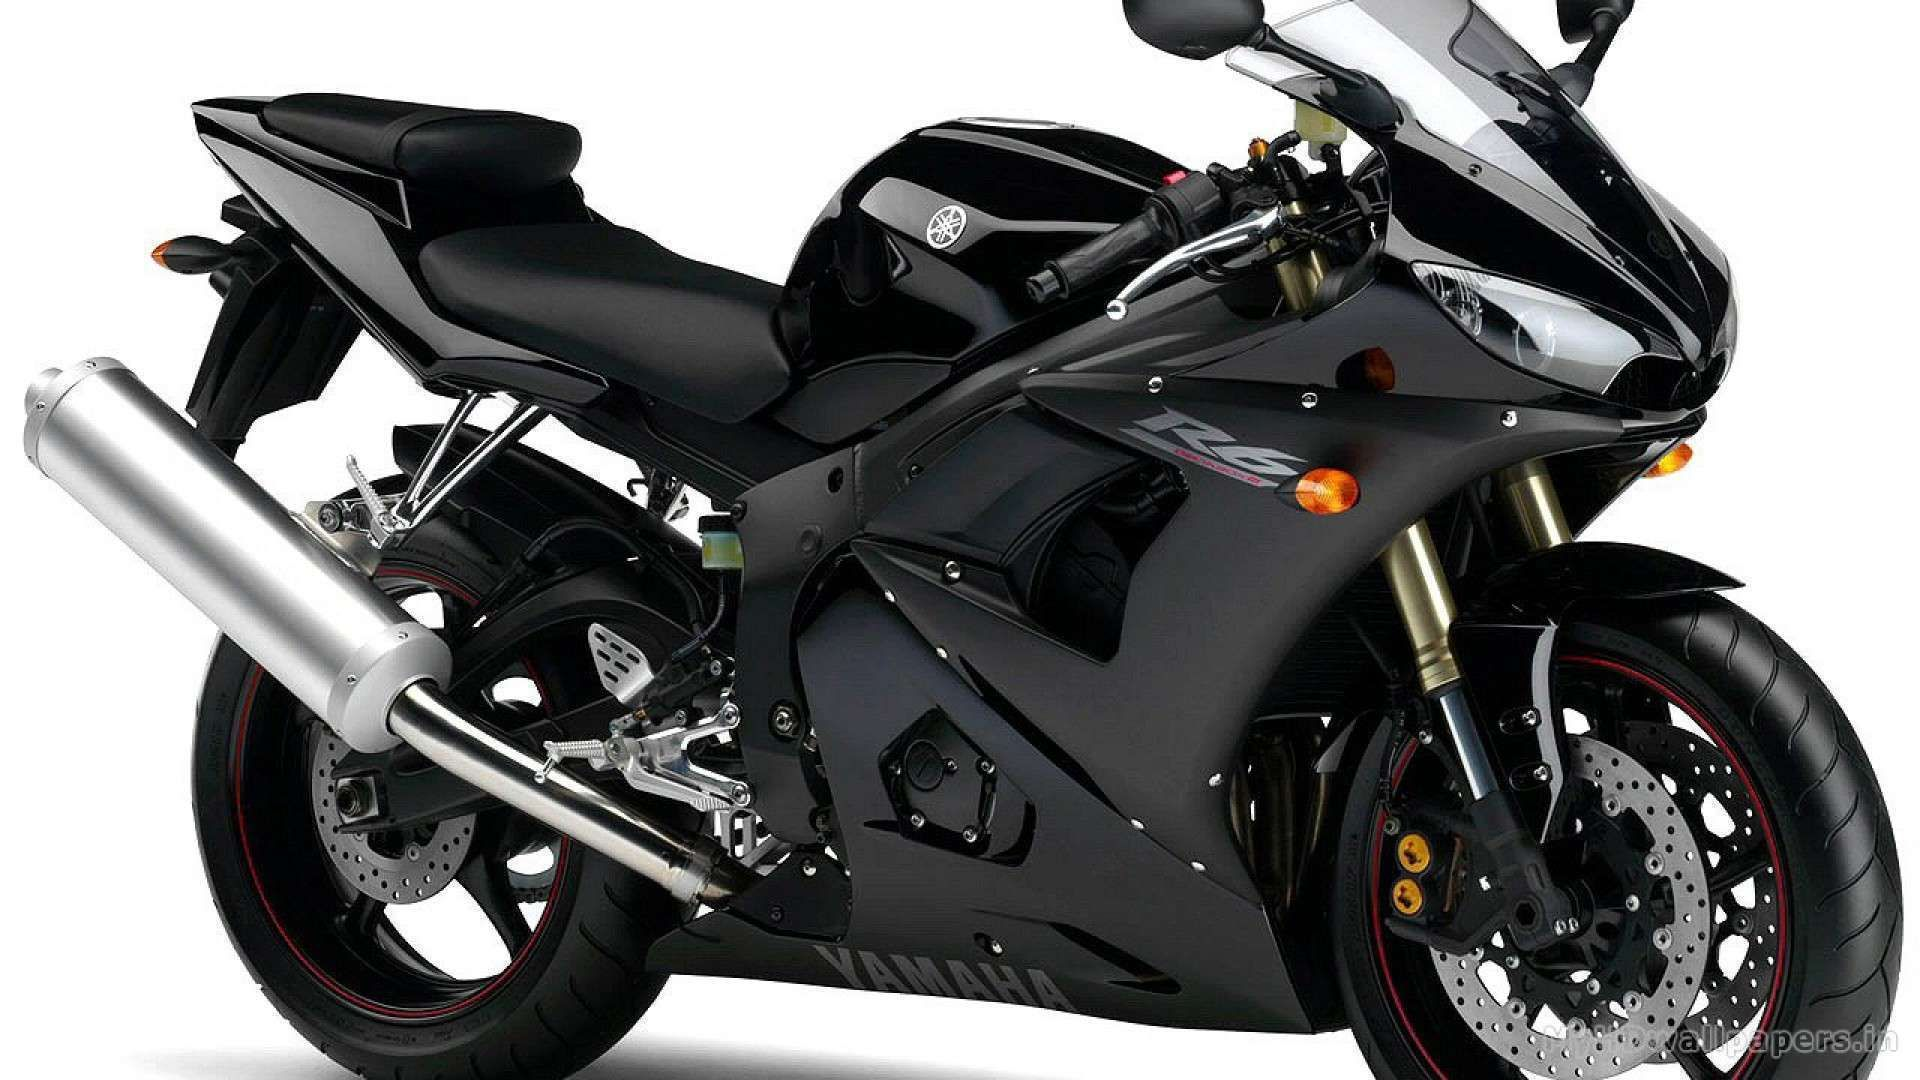 Click here to download in hd format yamaha r6 sports bike https